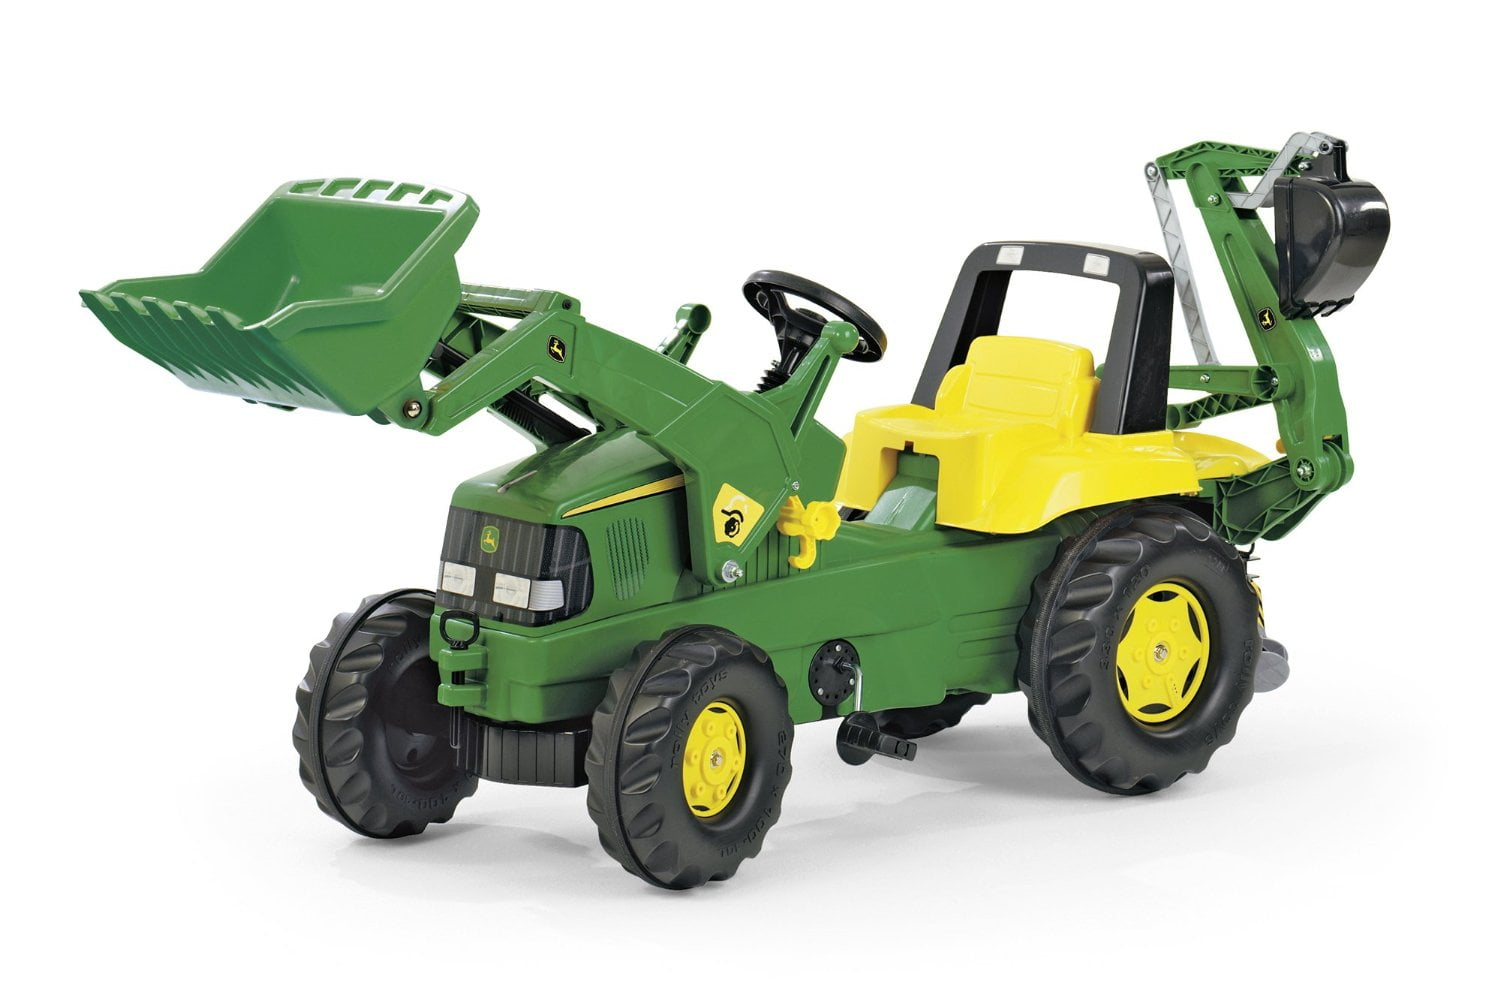 Benefits Of Ride On Toys : The top best ride on construction toys for kids in